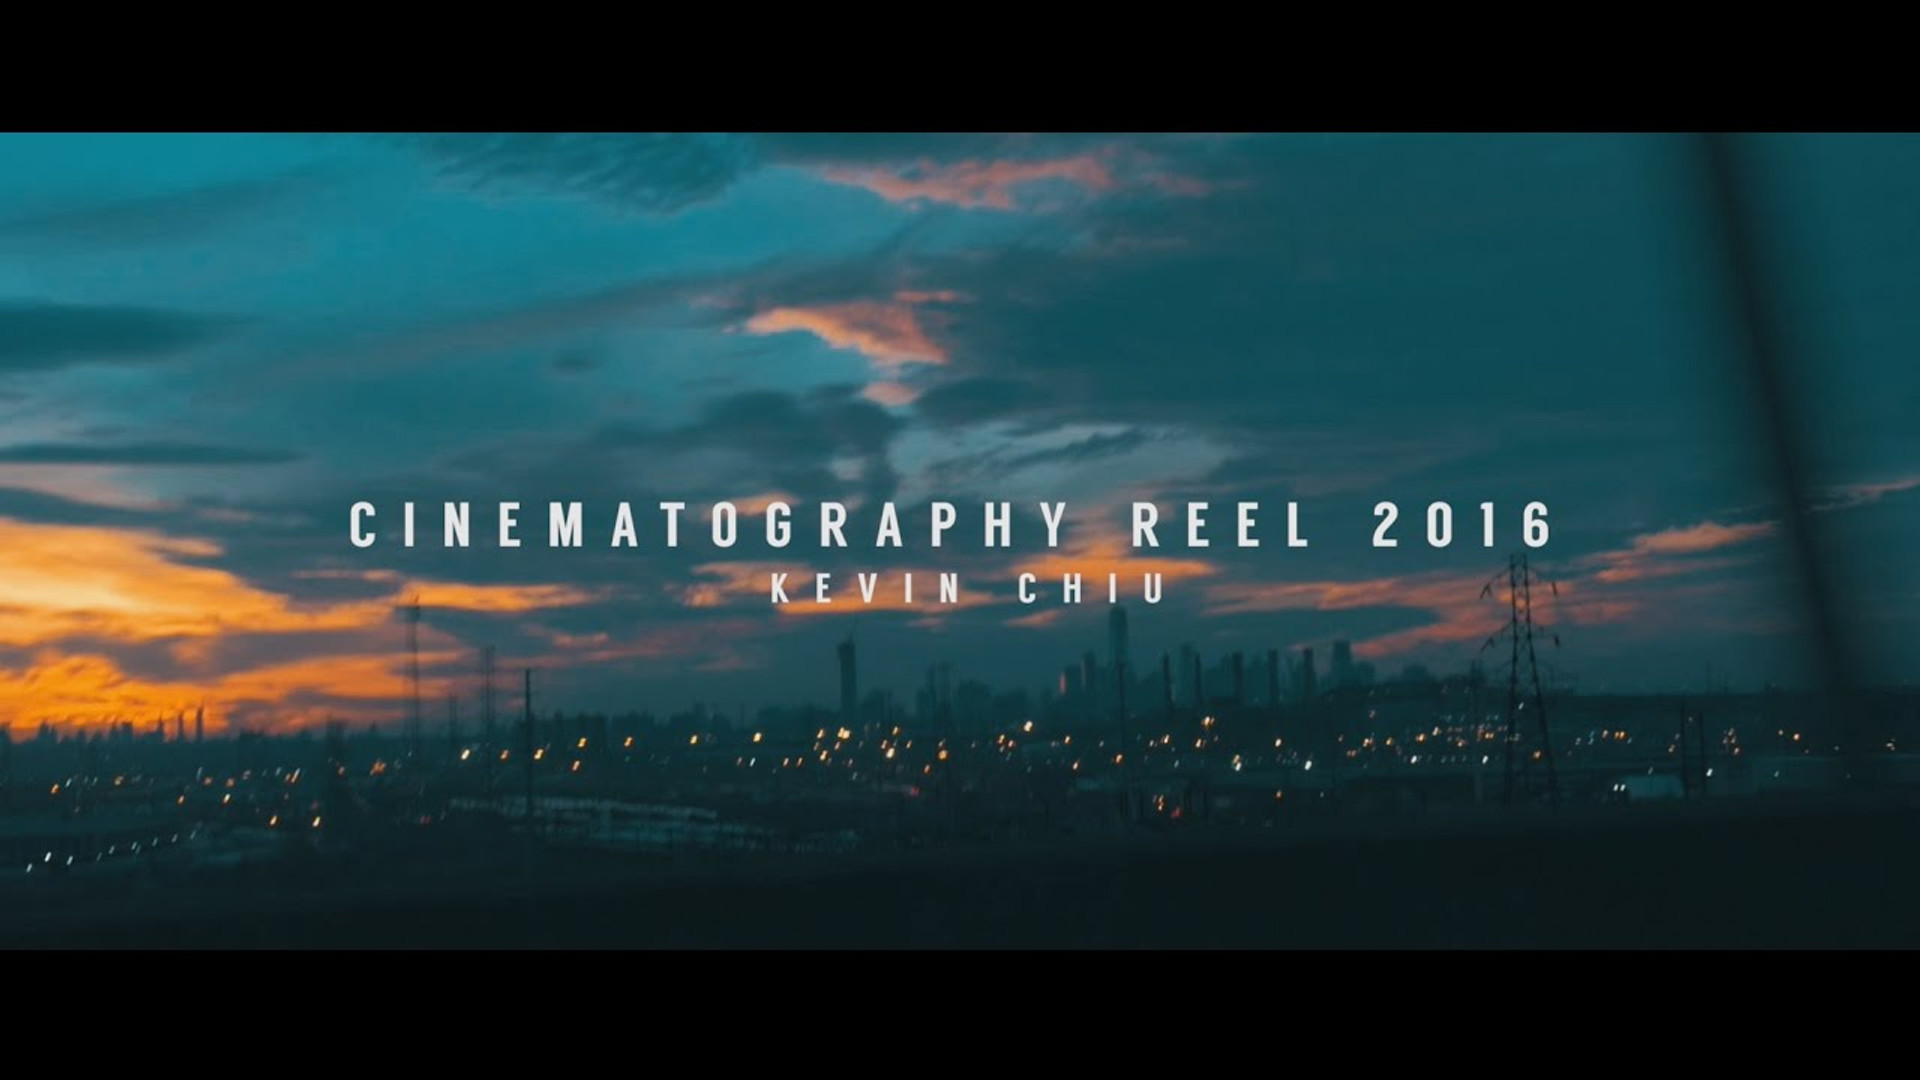 Cinematography Reel | 2016 | Kevin Chiu (GH4)